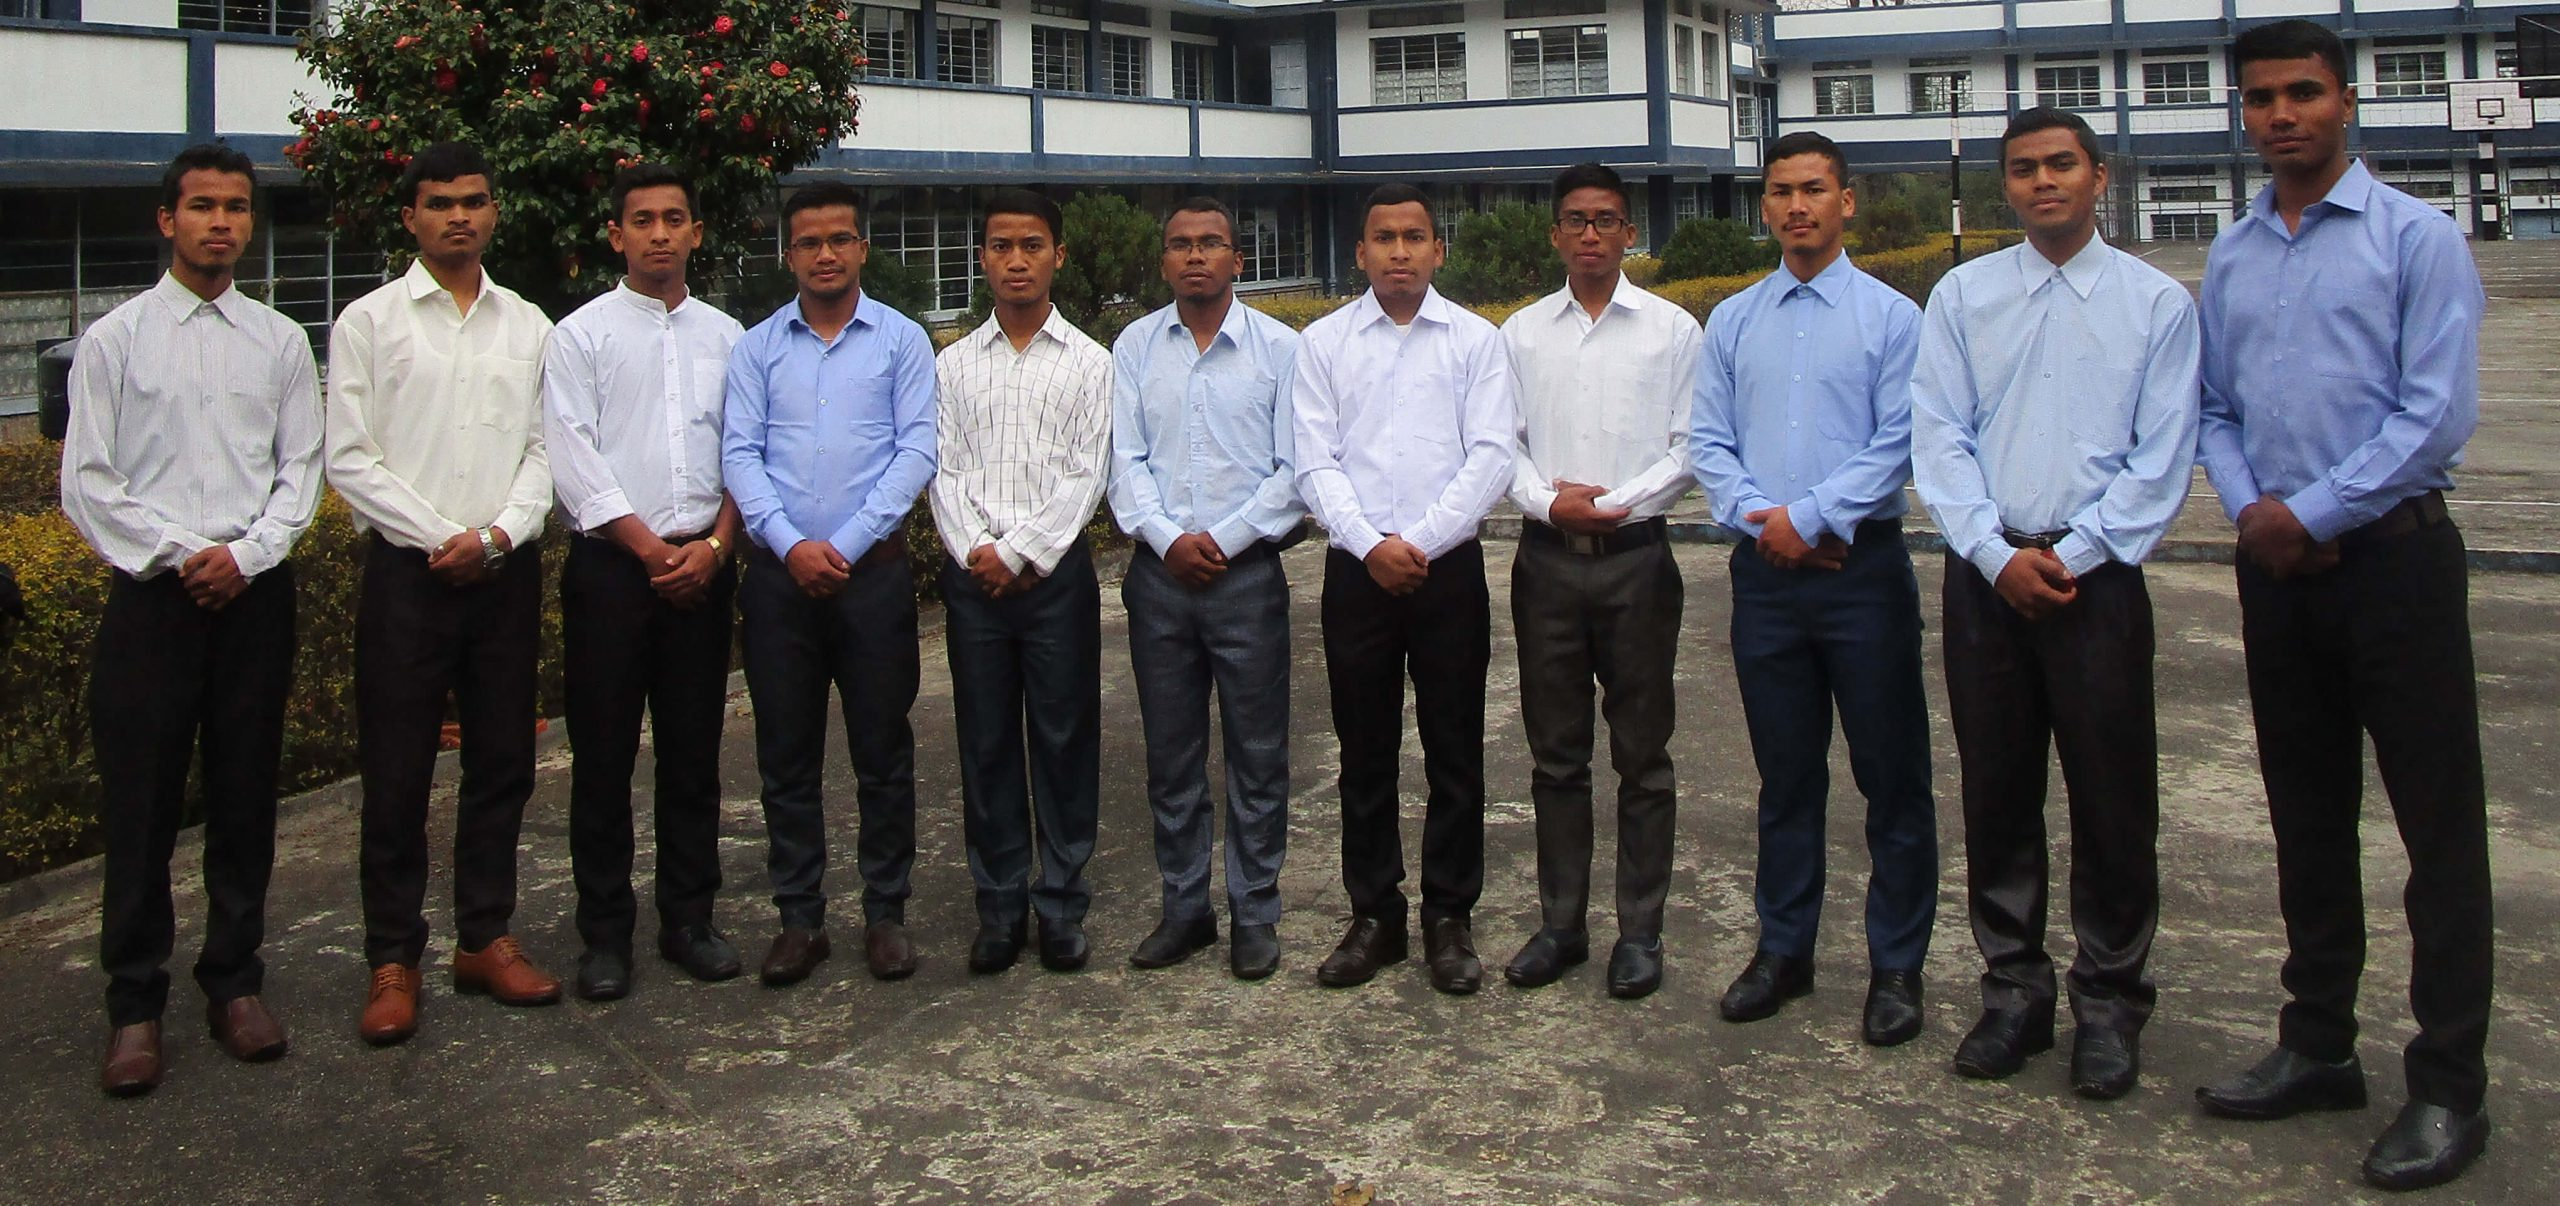 Seminarians of the Diocese of Jowai, India